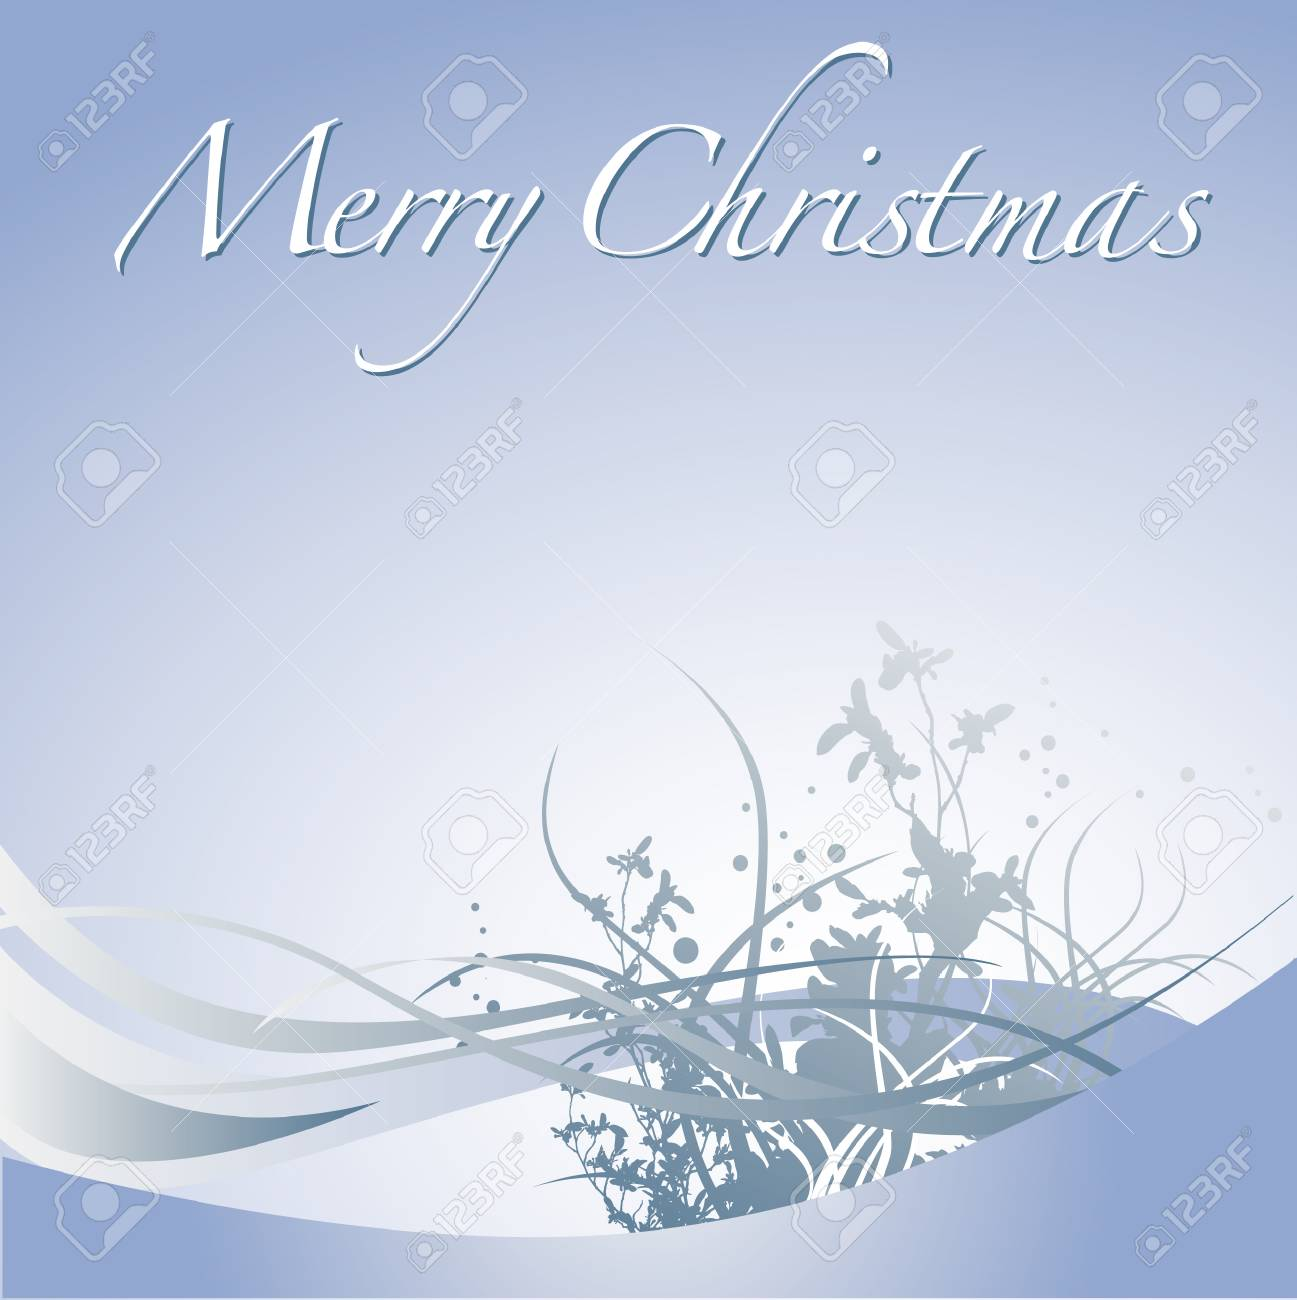 A Merry Christmas vector winter holiday background Stock Vector - 4264425